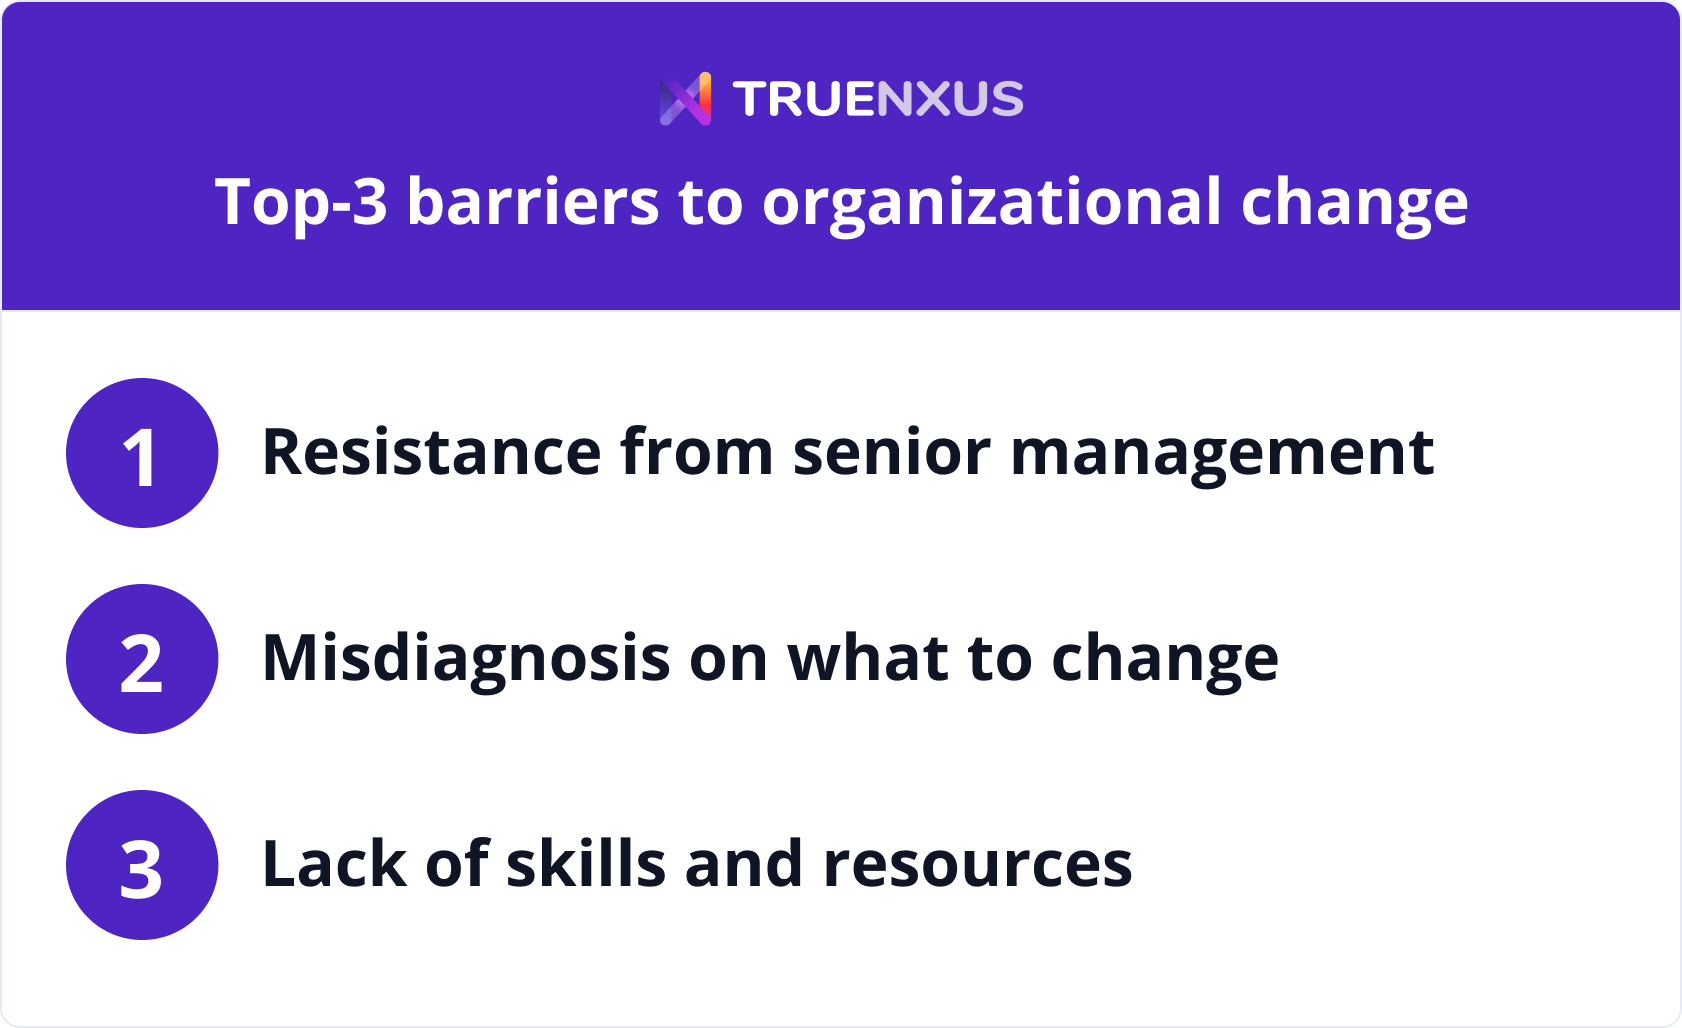 Top-3 barriers to organizational change infographic